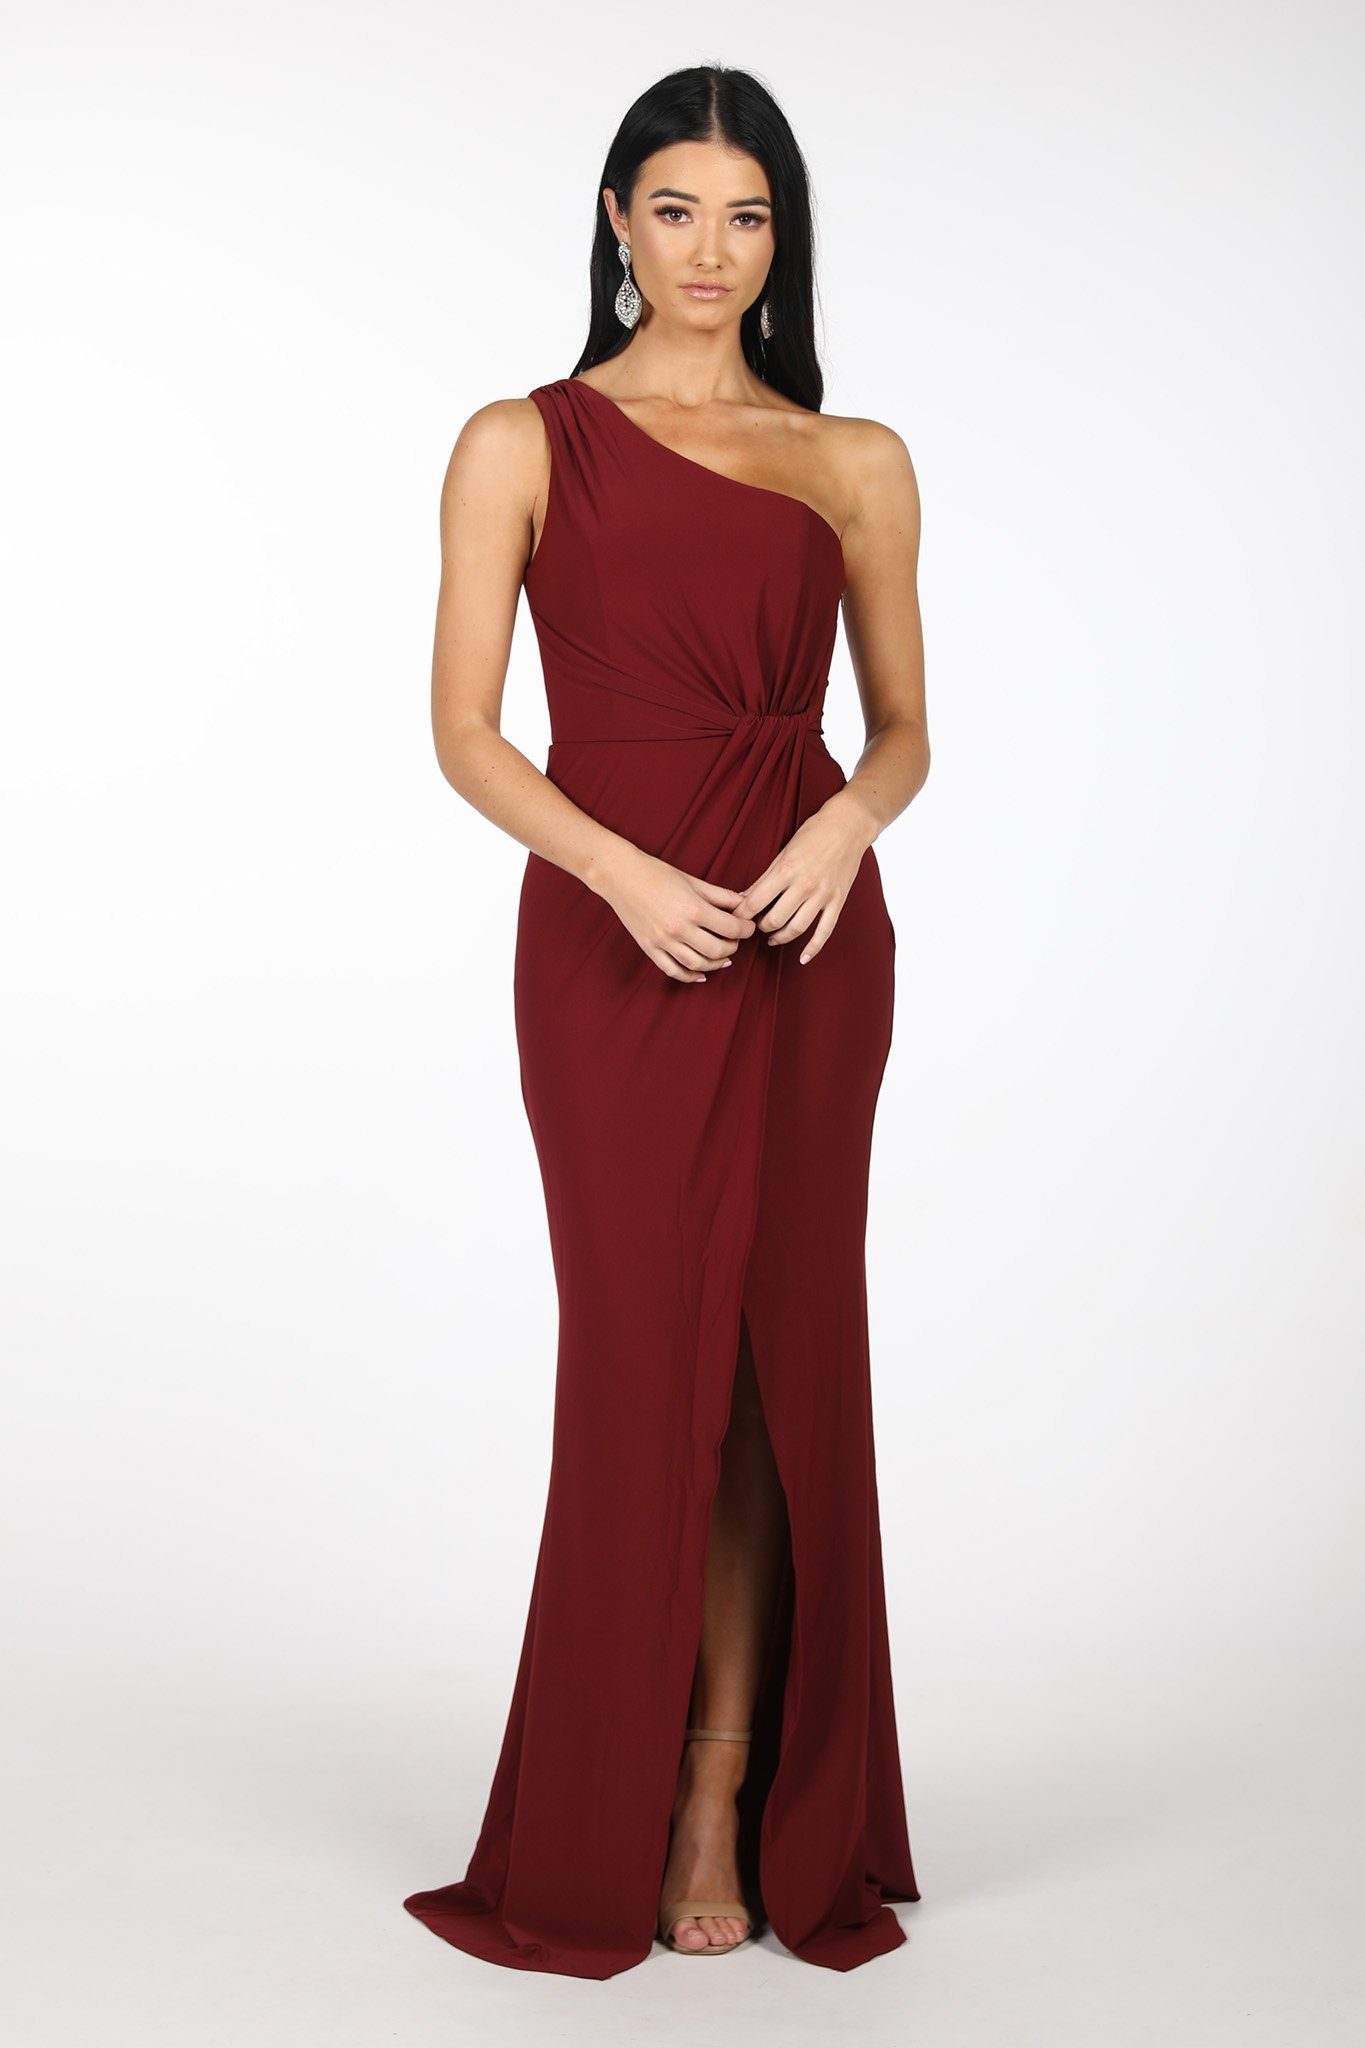 Burgundy Deep Red One Shoulder Formal Dress with Asymmetrical One Shoulder Neckline, Ruched Waist, Above Knee Slit, and a Column Styled Silhouette